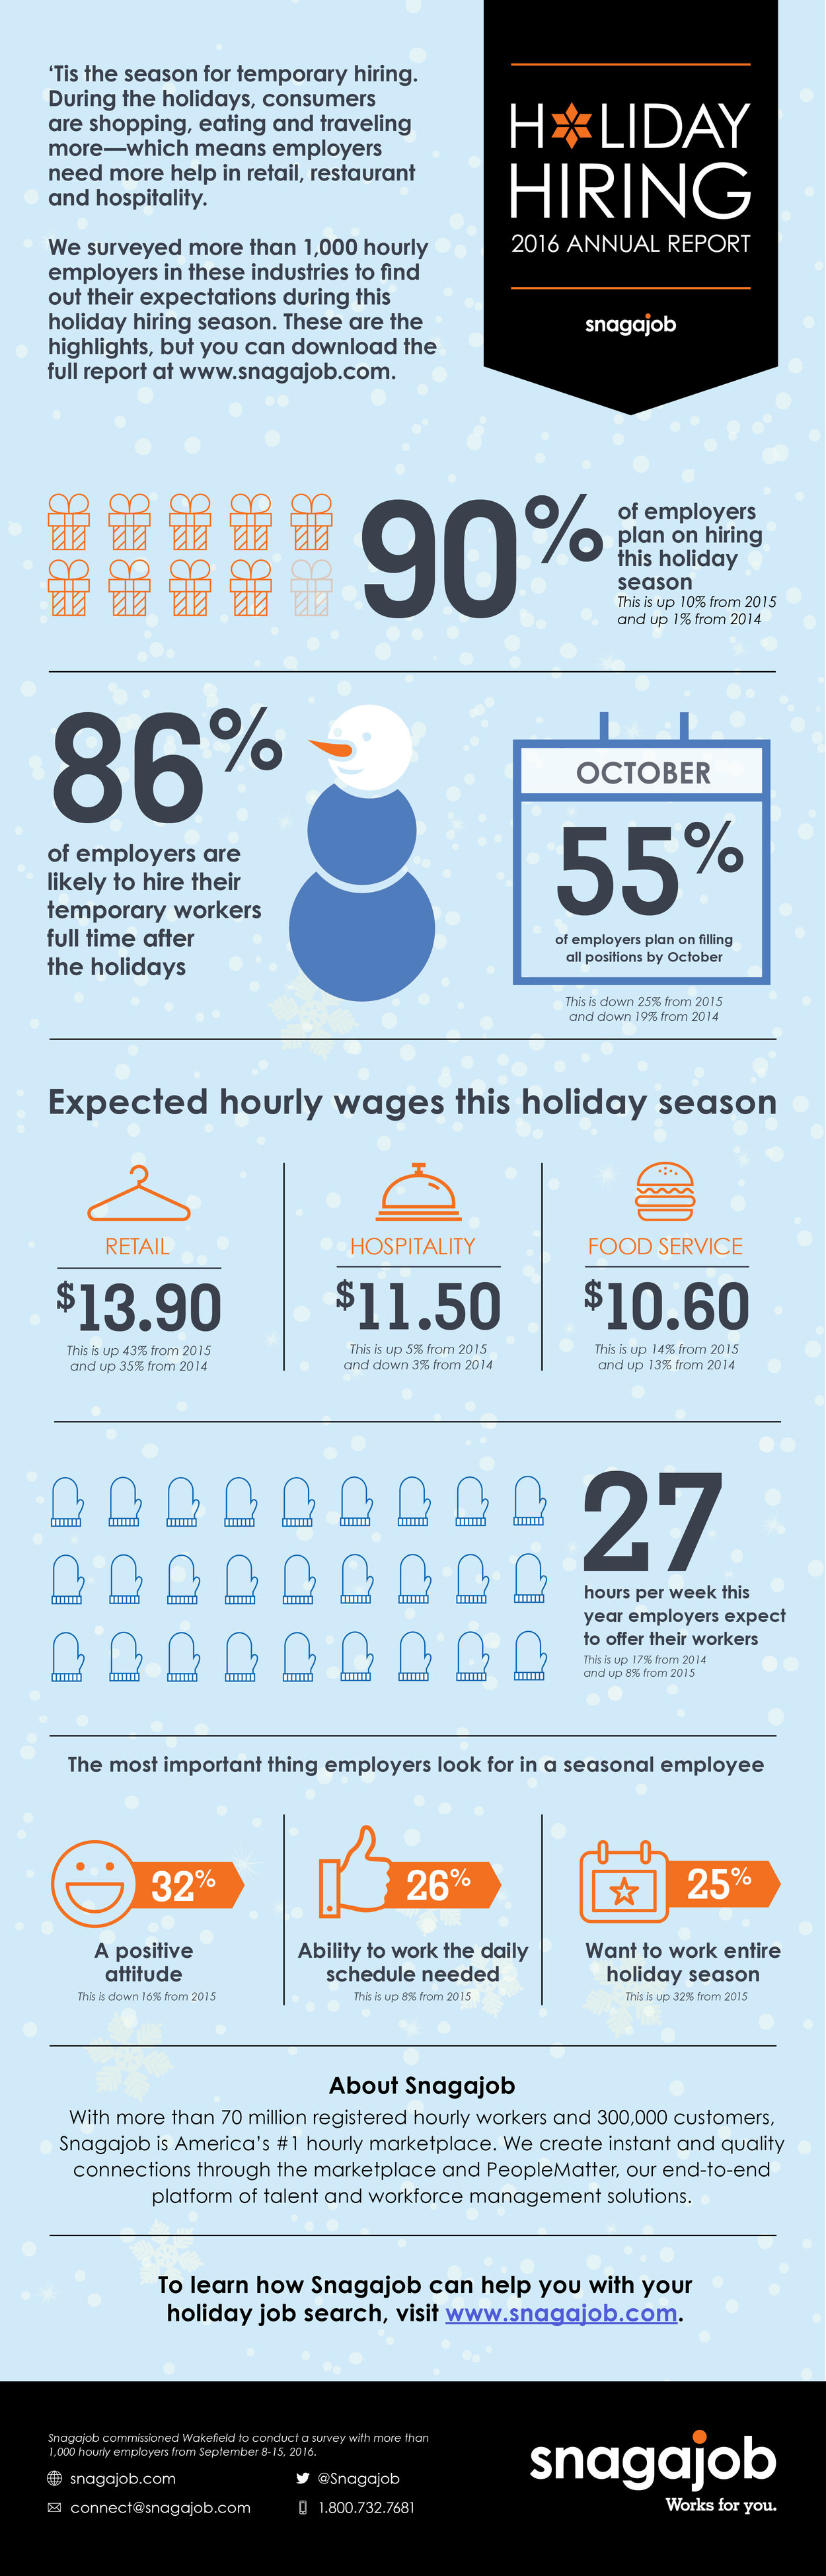 rsz_2016_holidayhiring_infographic_seeker_version